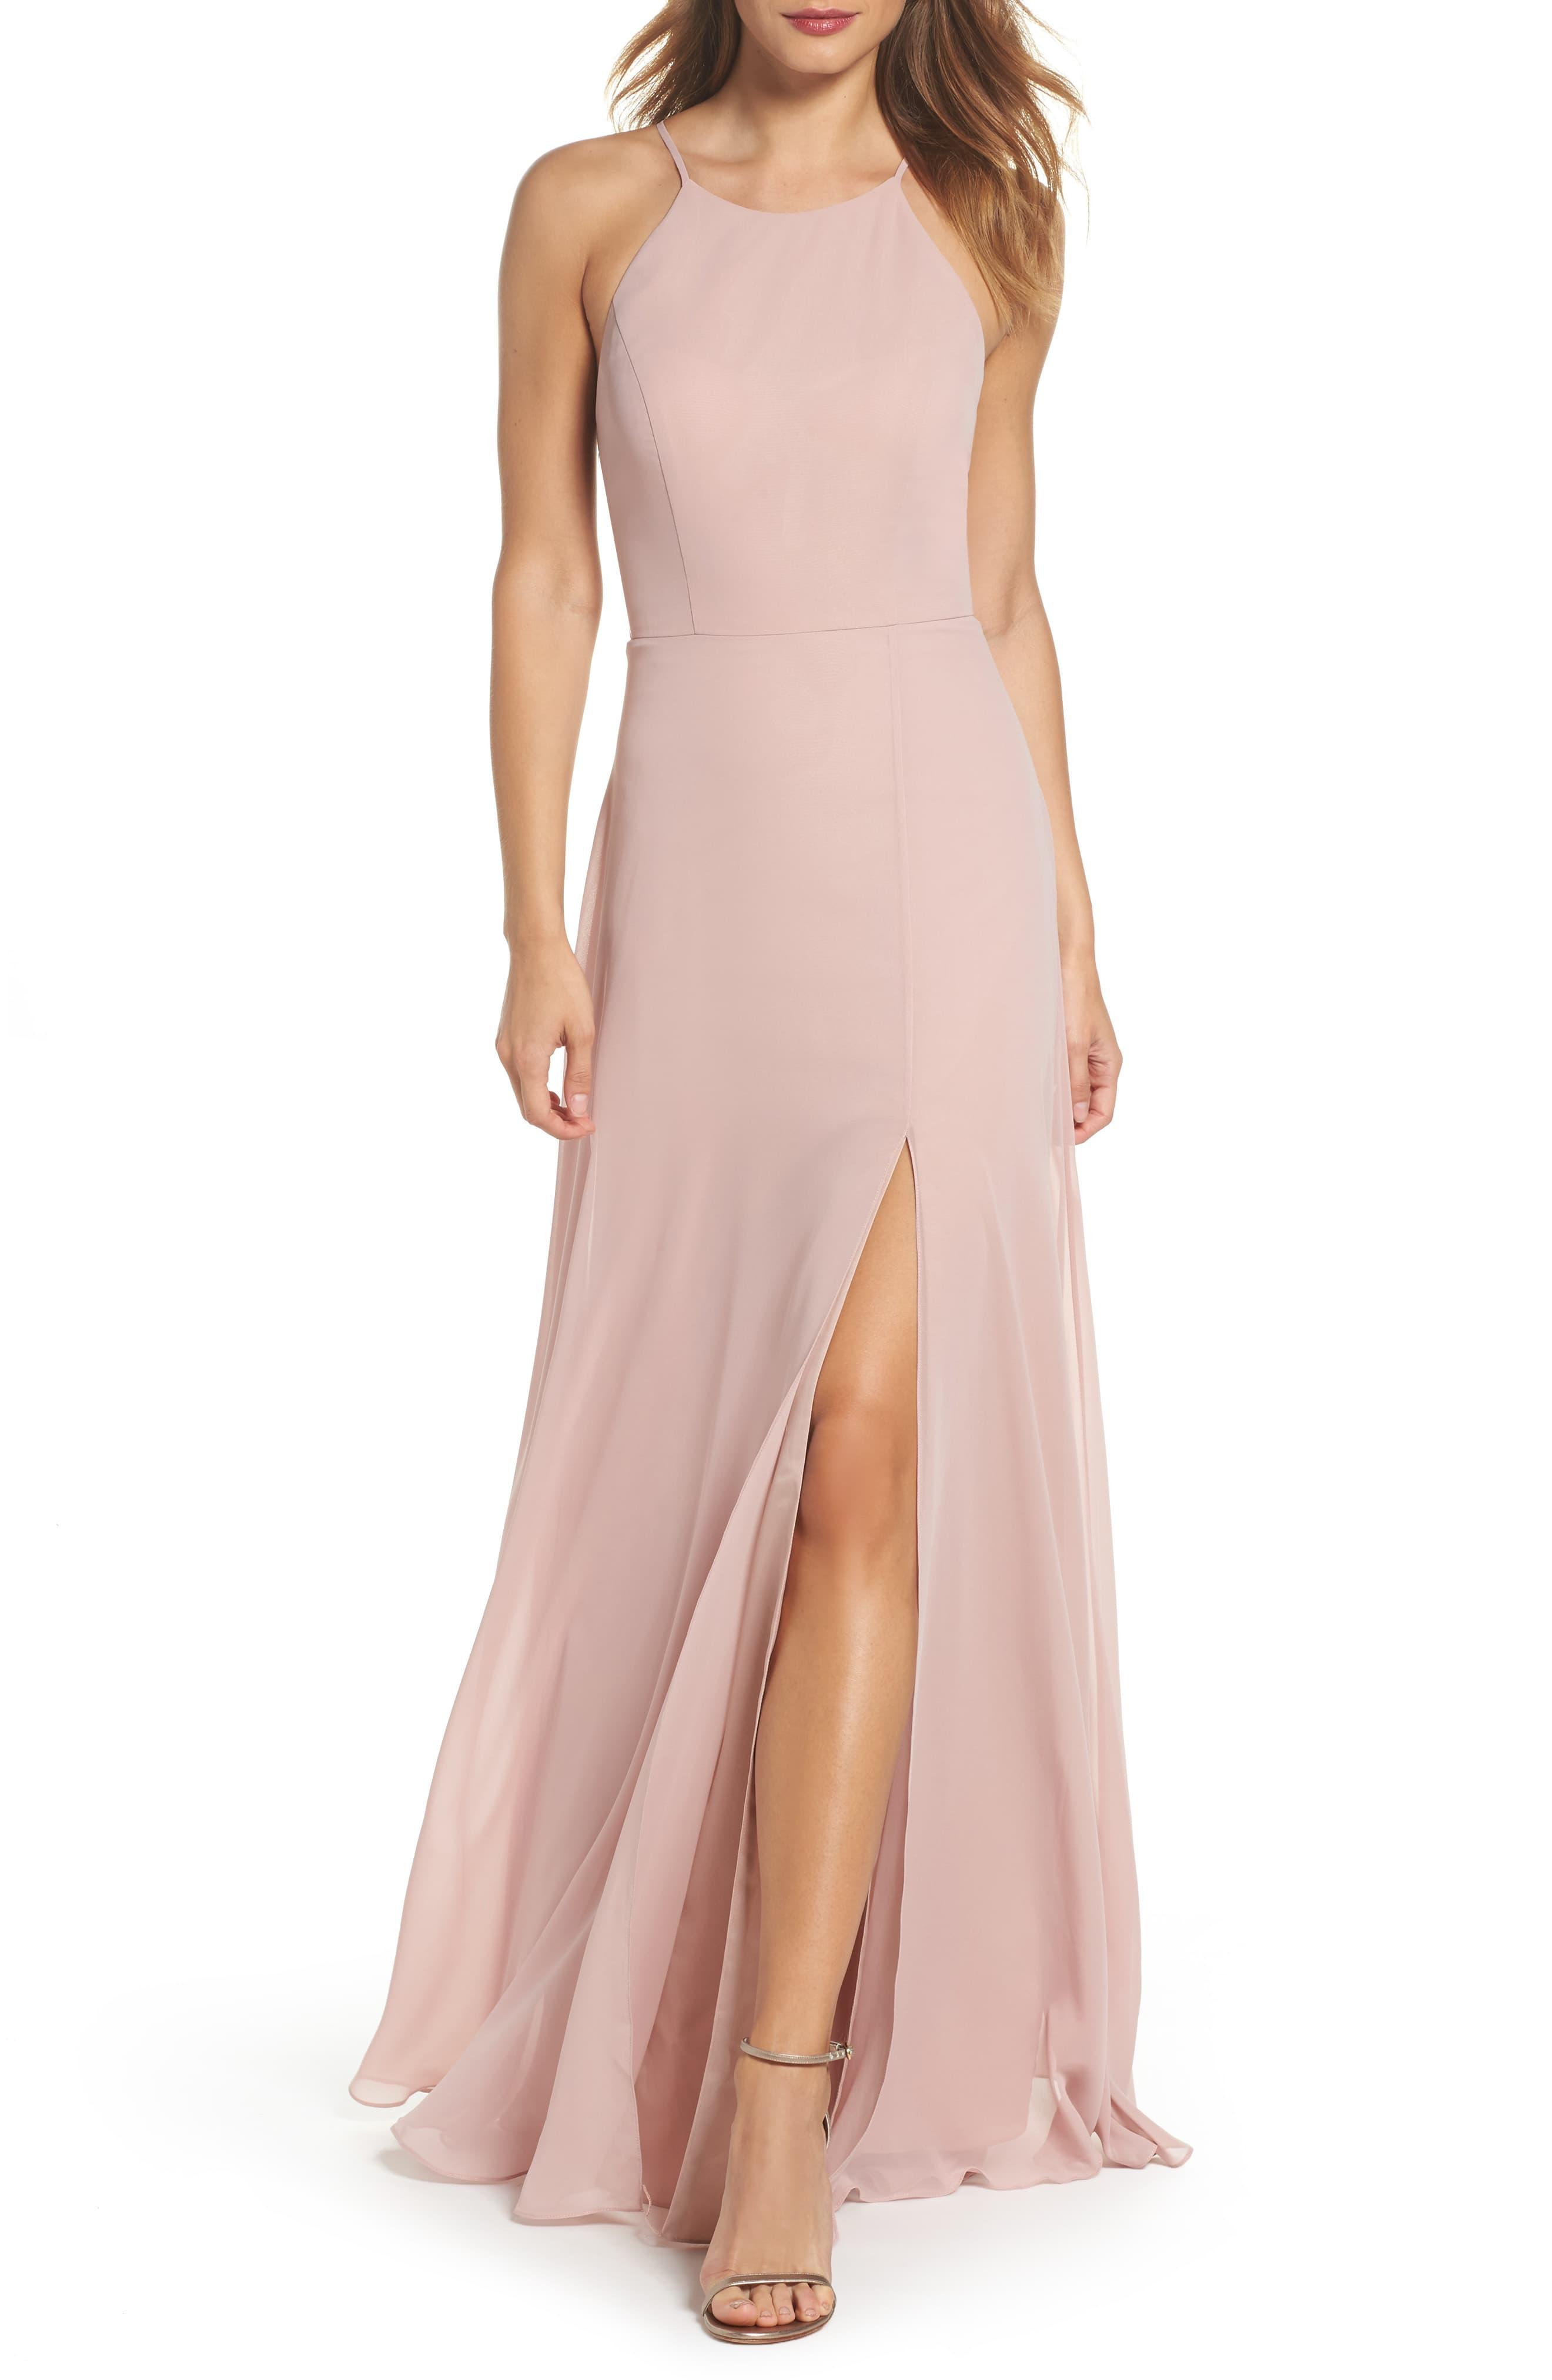 4f09f119b33 Jenny Yoo Kayla A-line Halter Gown in Pink - Save 40% - Lyst